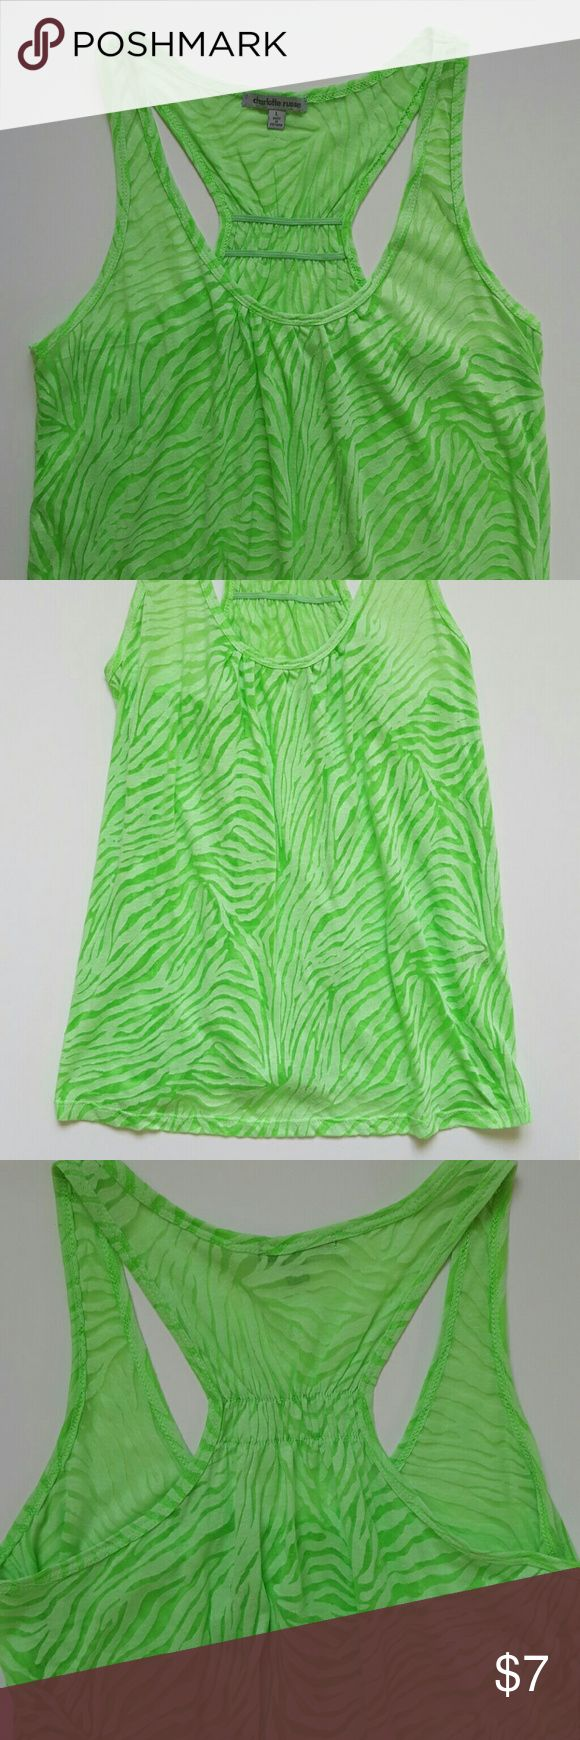 Flowy Racer Back Tank Light & bright tank for hot summer weather coming up! This animal print top is sheer and loose to keep you cool. Perfect to use over a bikini or bandeau bra. Charlotte Russe Tops Tank Tops